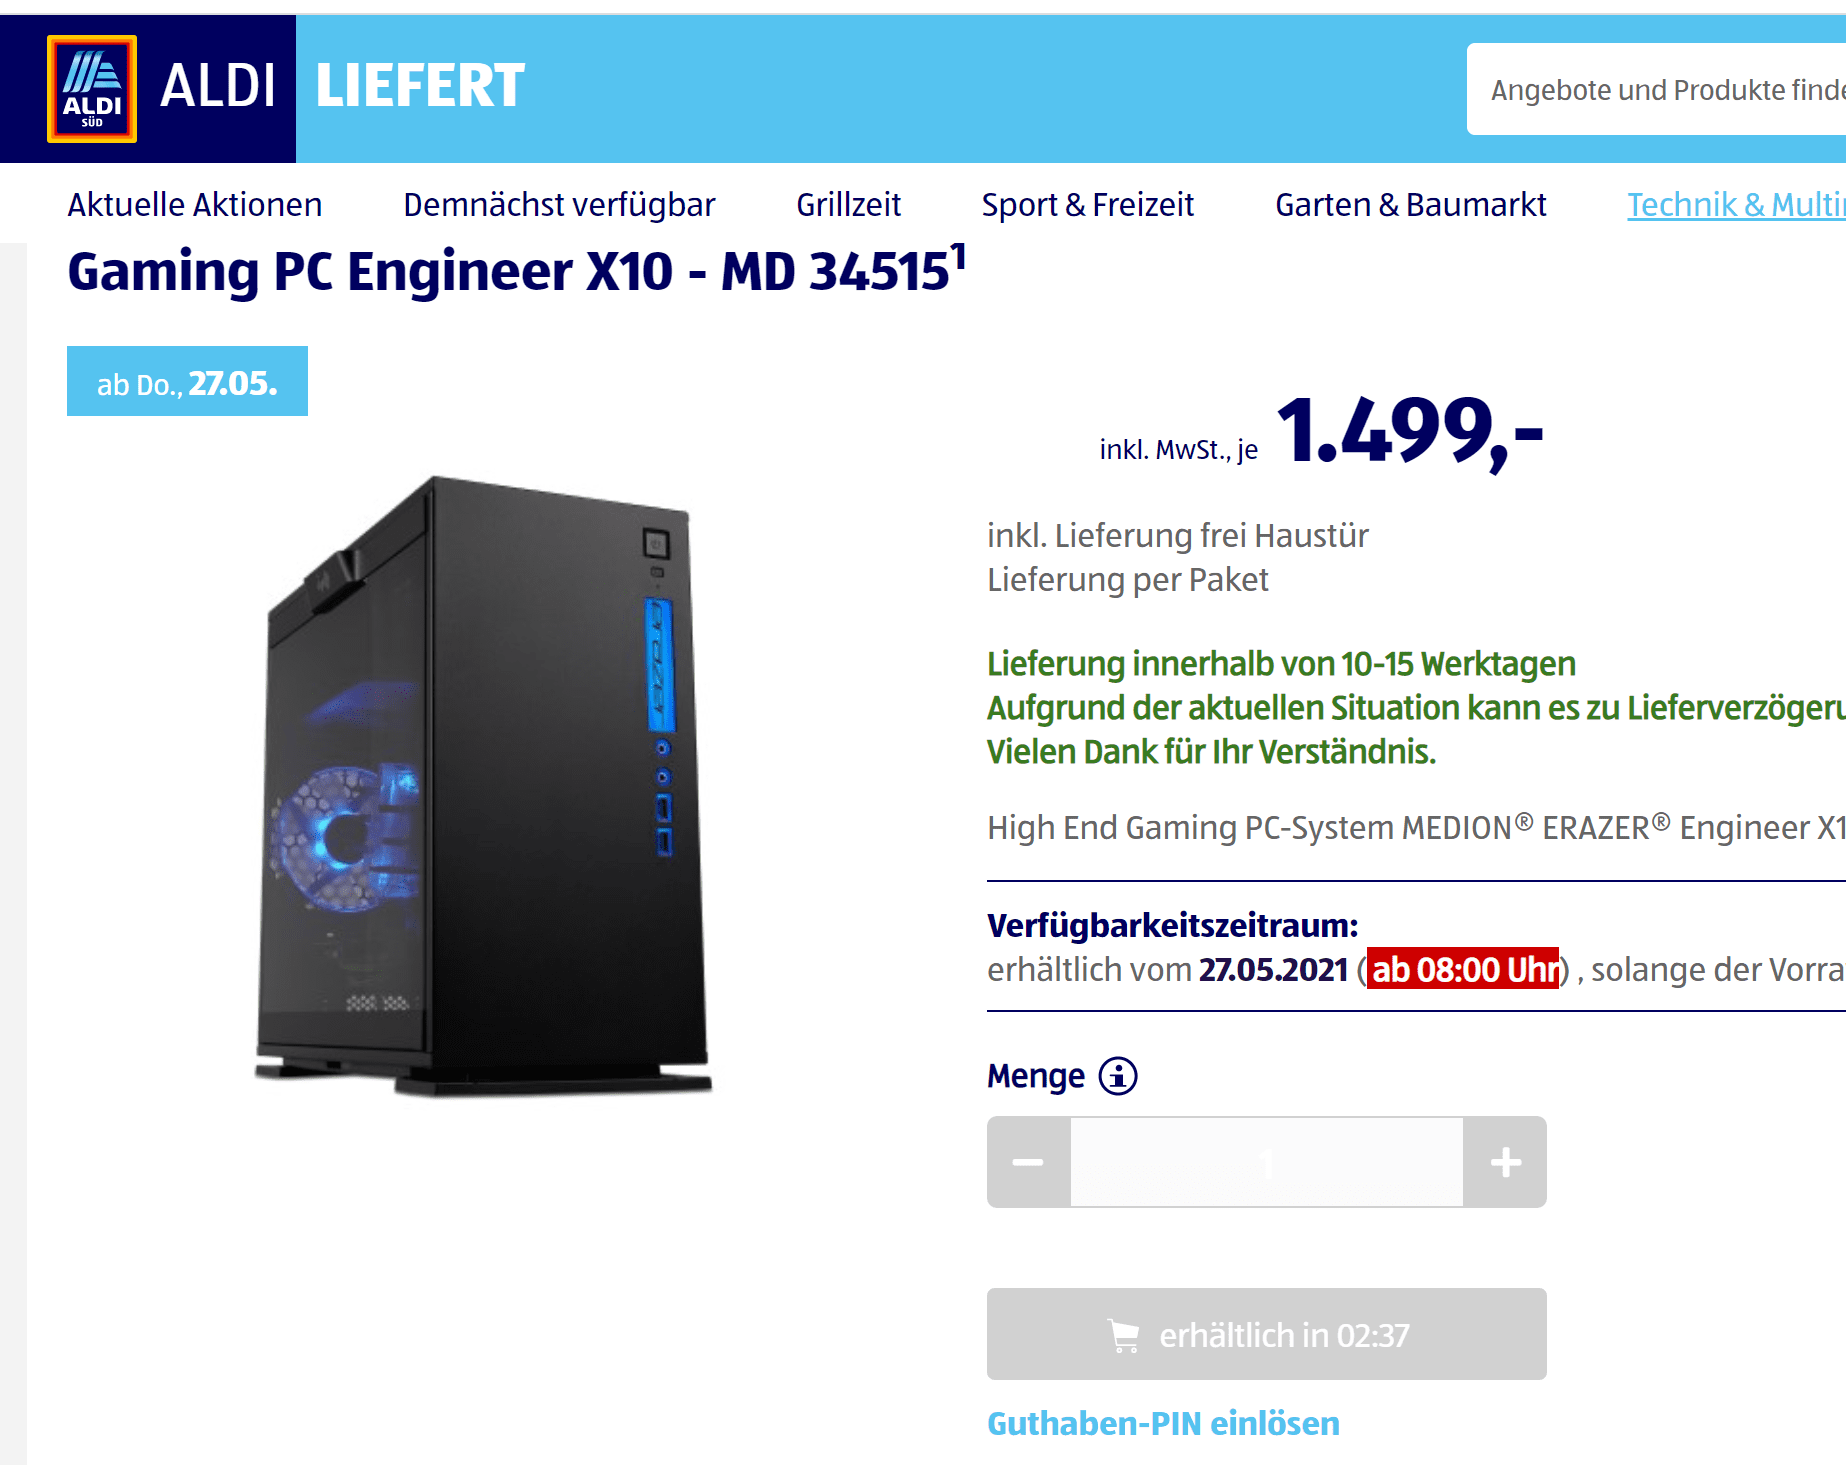 2021-05-27 07_57_23-Gaming PC Engineer X10 - MD 34515 _ ALDI liefert.png